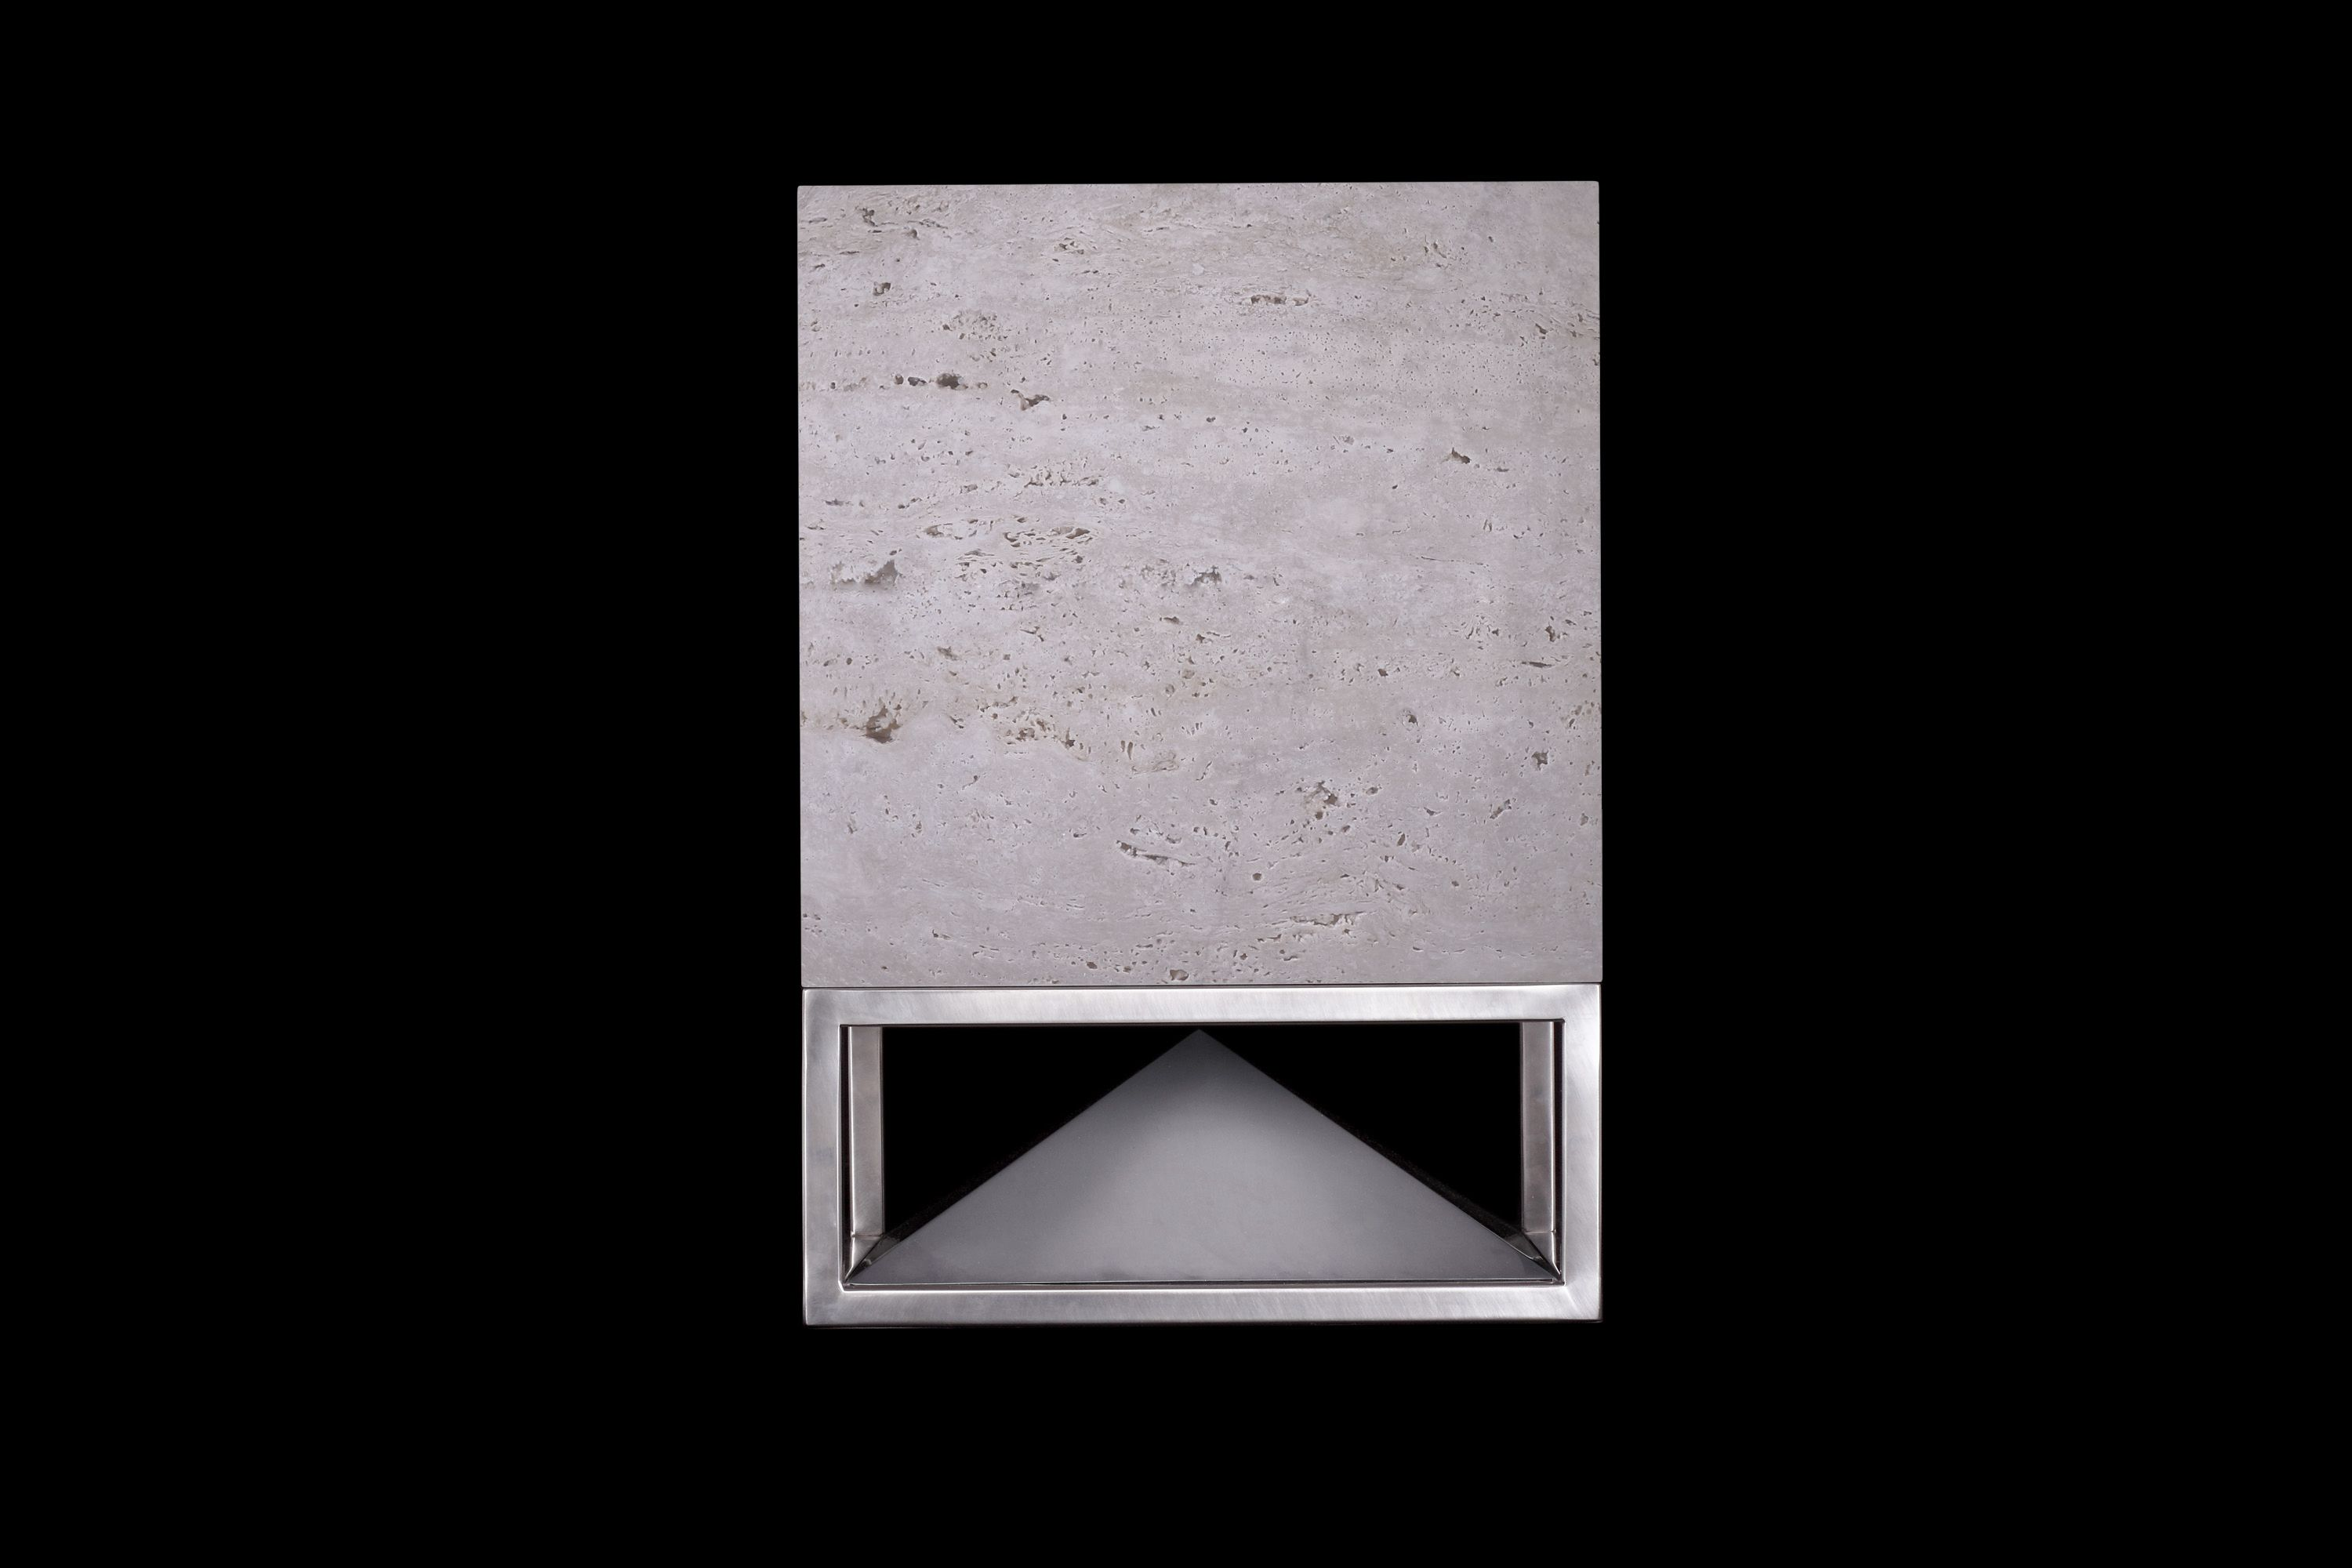 Cube, travertine and stainless steel base, omnidirectional sound module designed by Vladimir Djurovic for Architettura Sonora